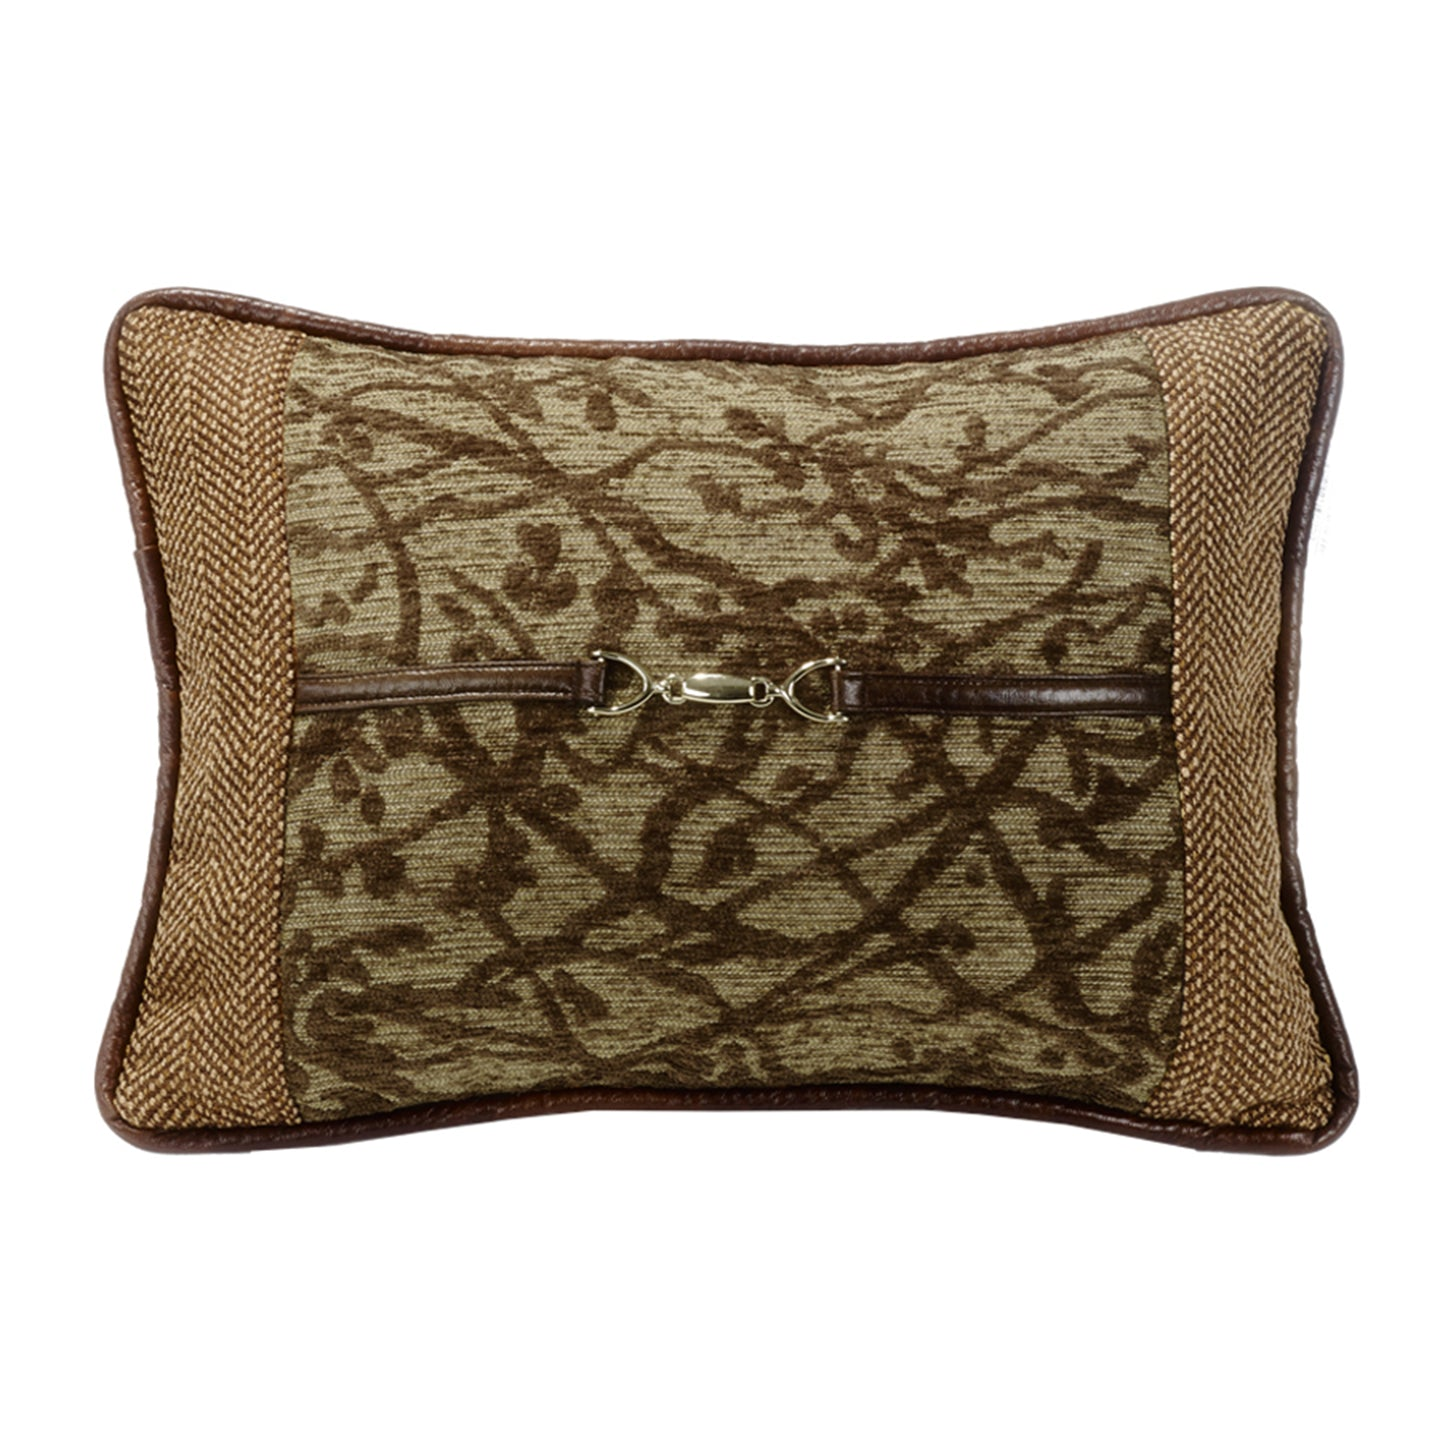 Highland Lodge Tree Pillow w/Buckle Detail